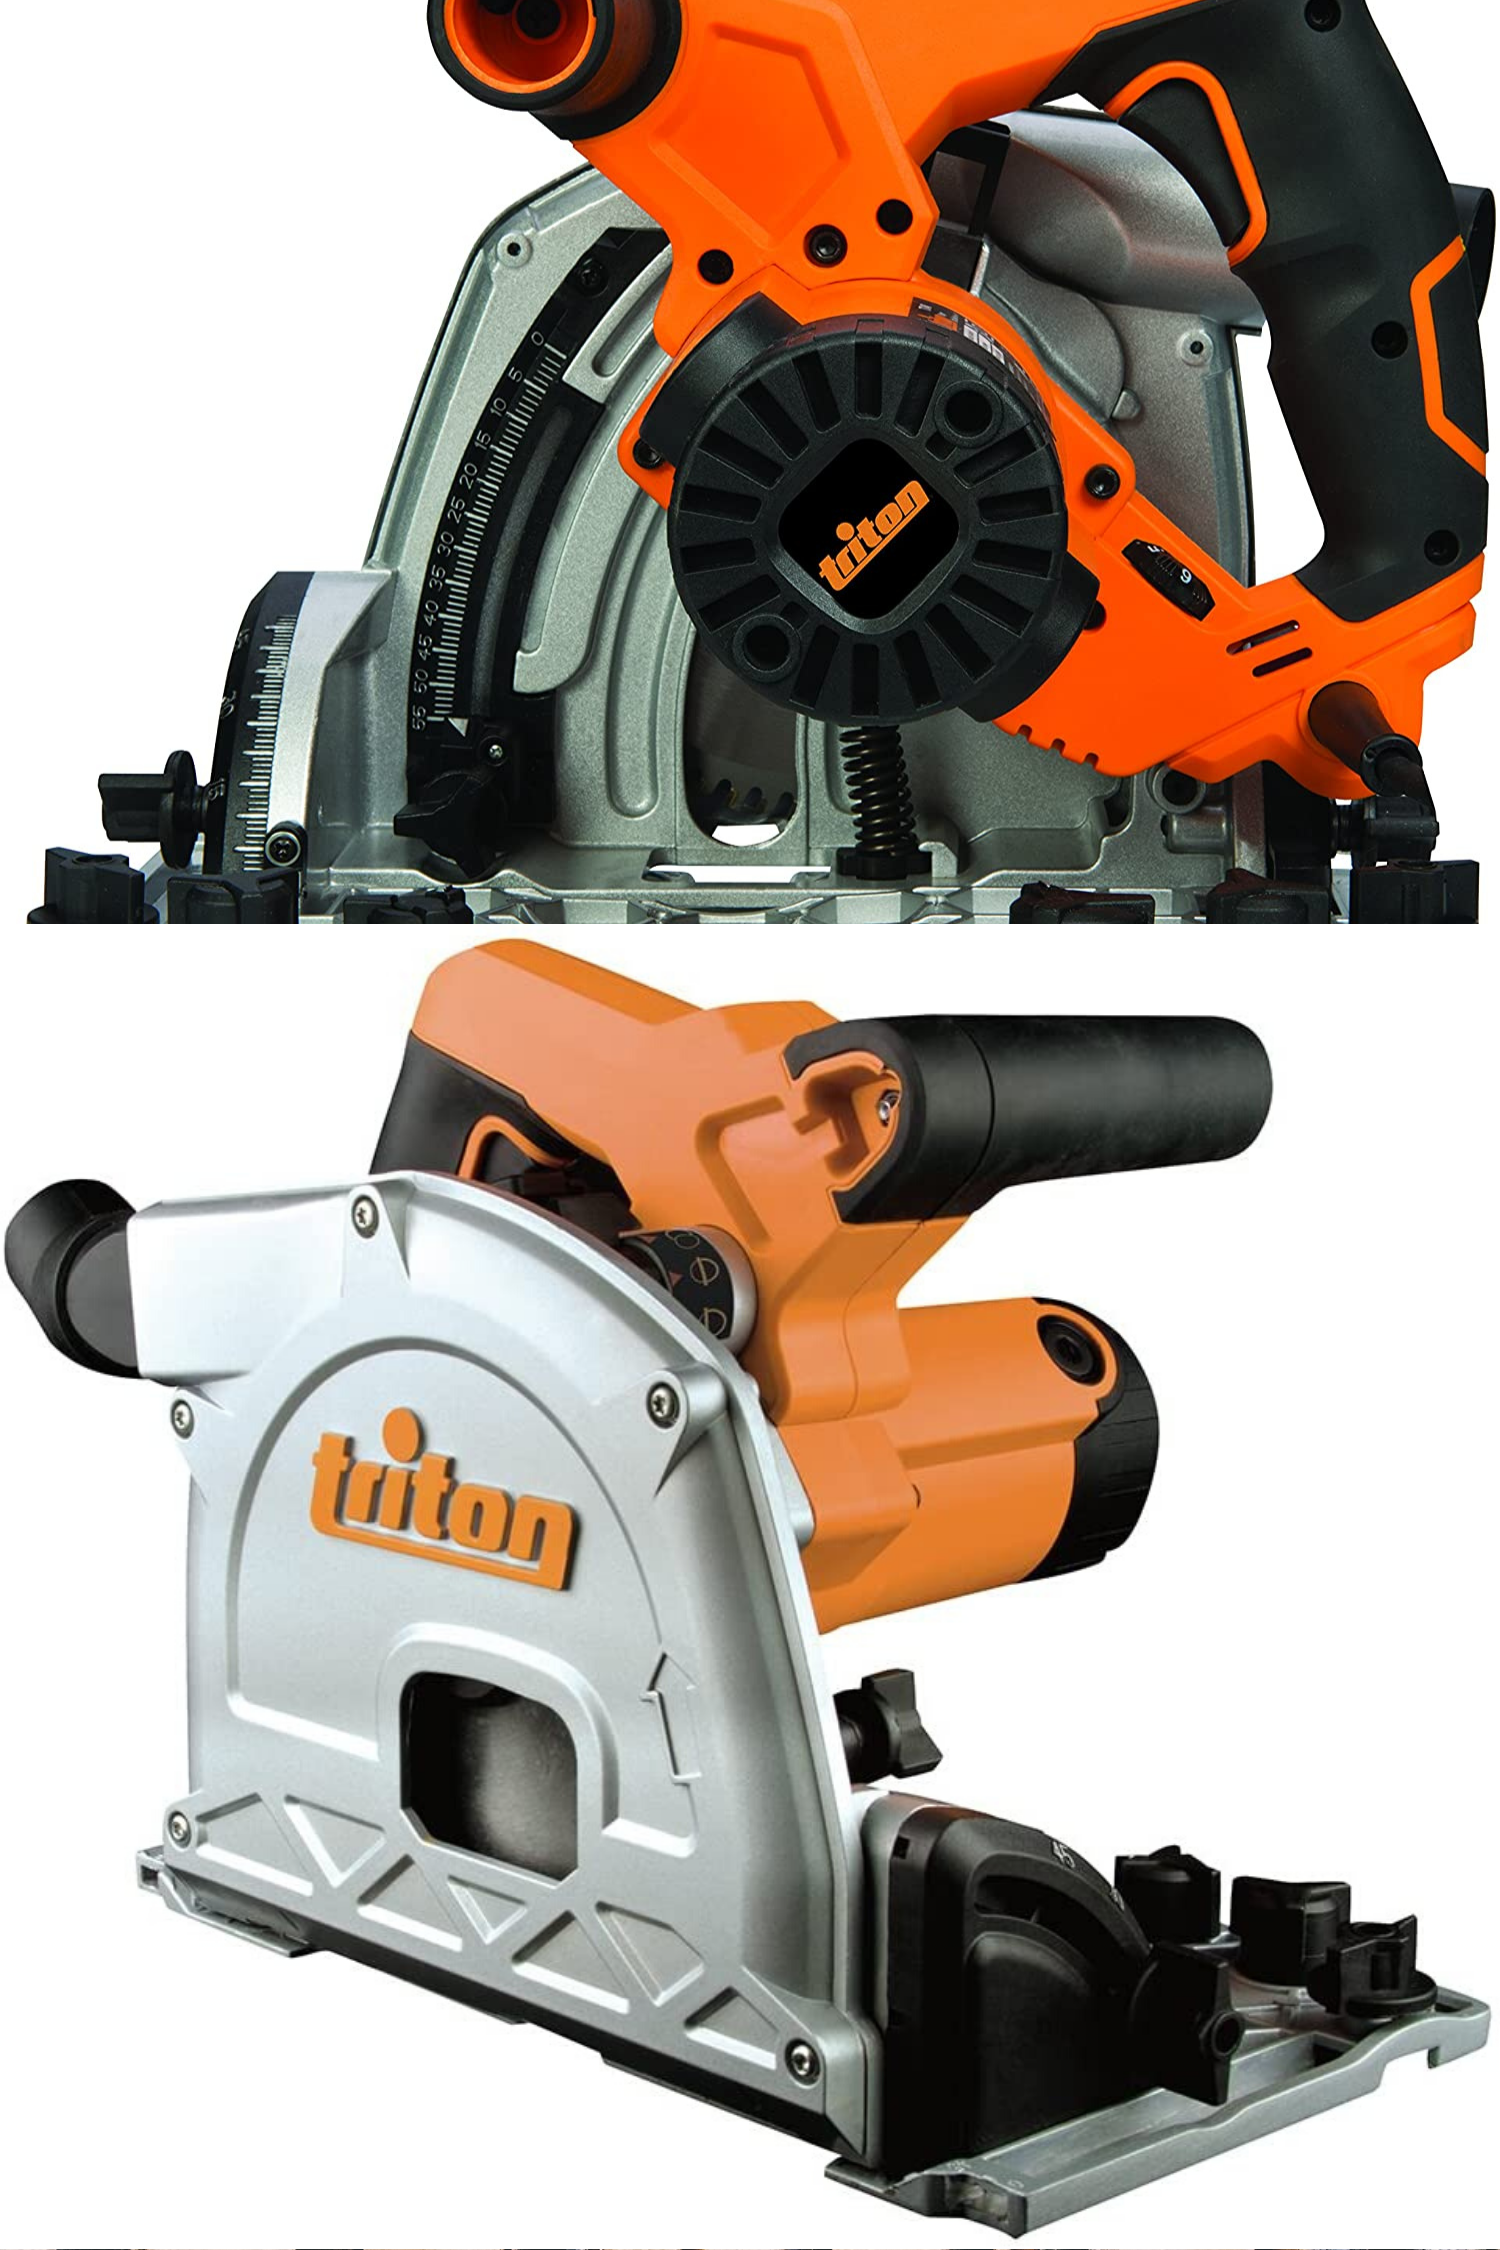 Track Saws Triton Tts1400 6 1 2 Inch Plunge Track Saw 1400w In 2020 Saws Power Saws Best Track